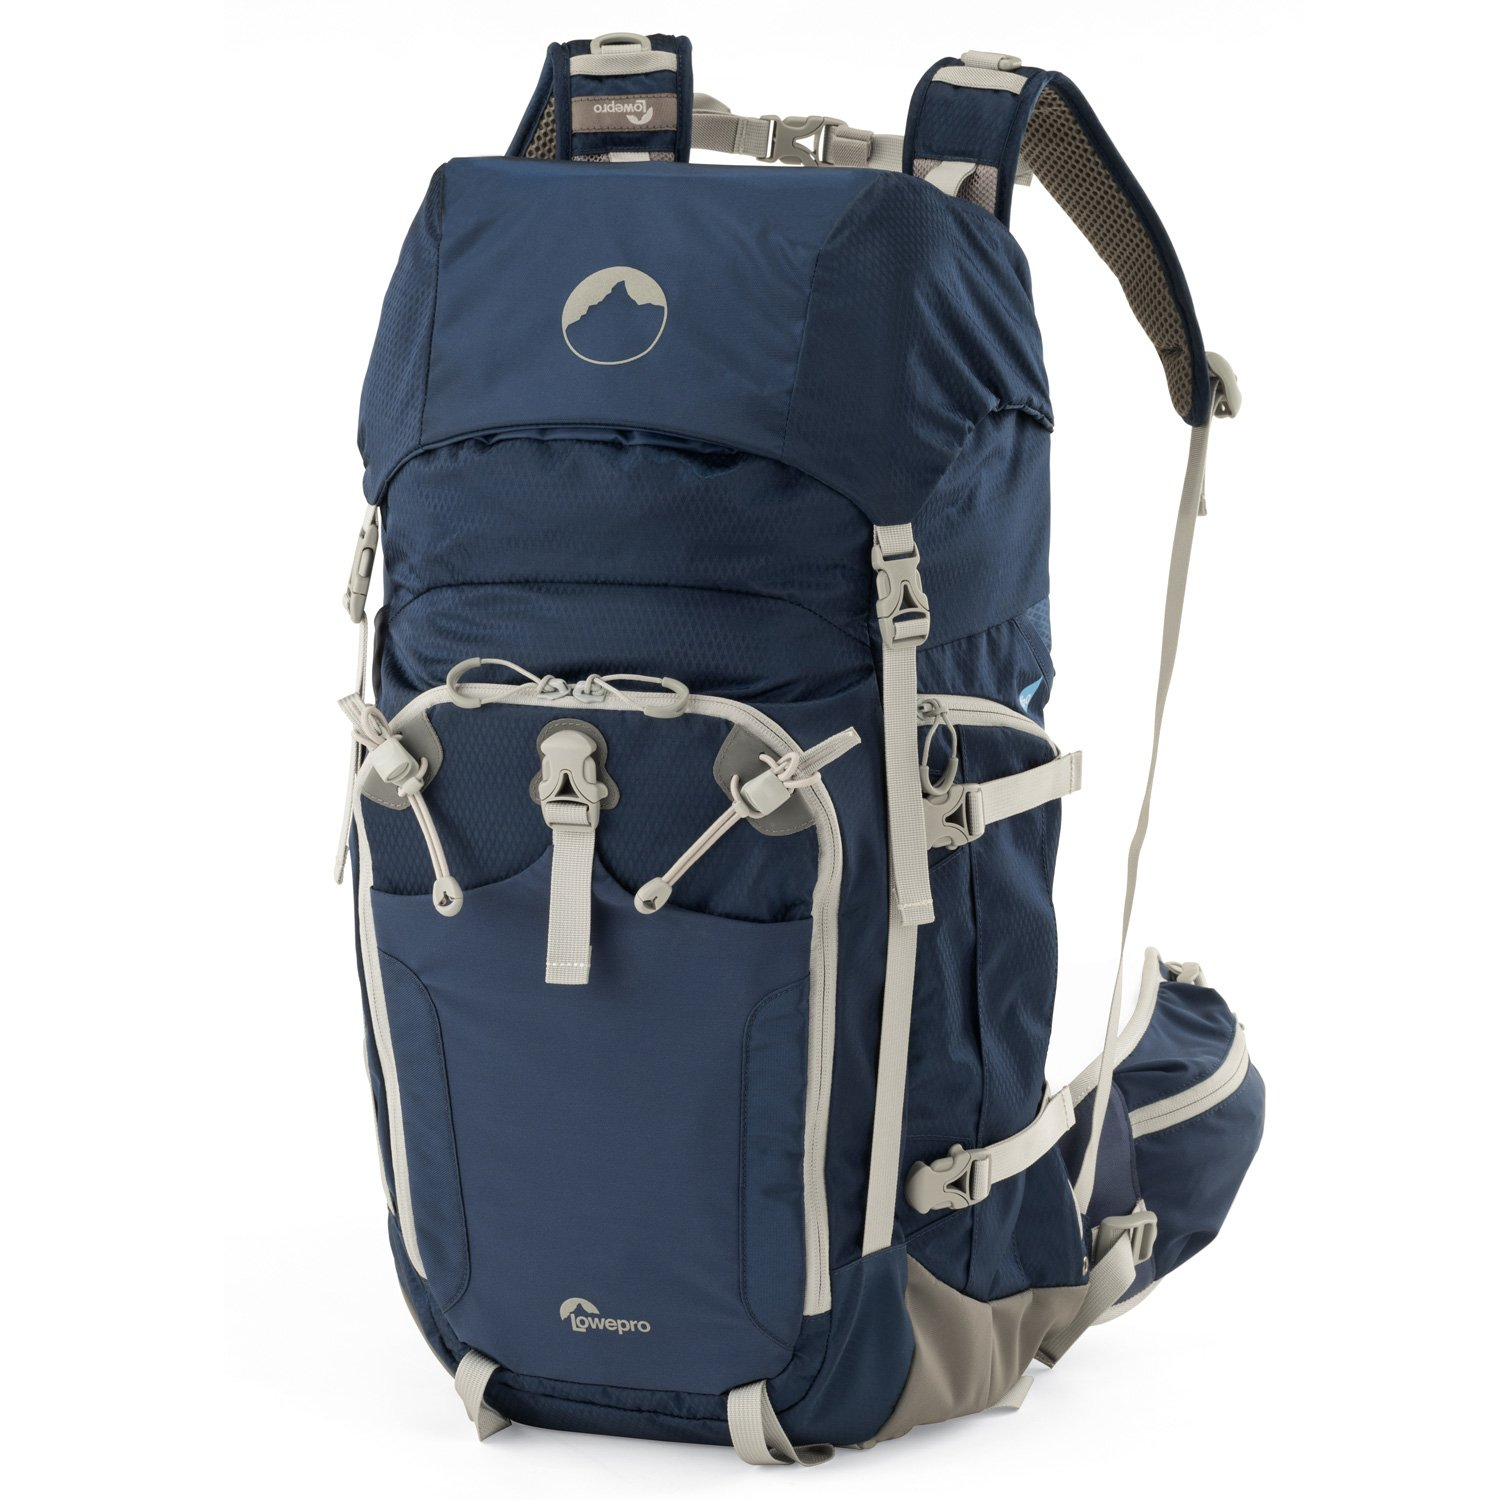 Lowepro LP36447-PWW Rover Pro 35L AW (Galaxy Blue/Light Grey) by Lowepro